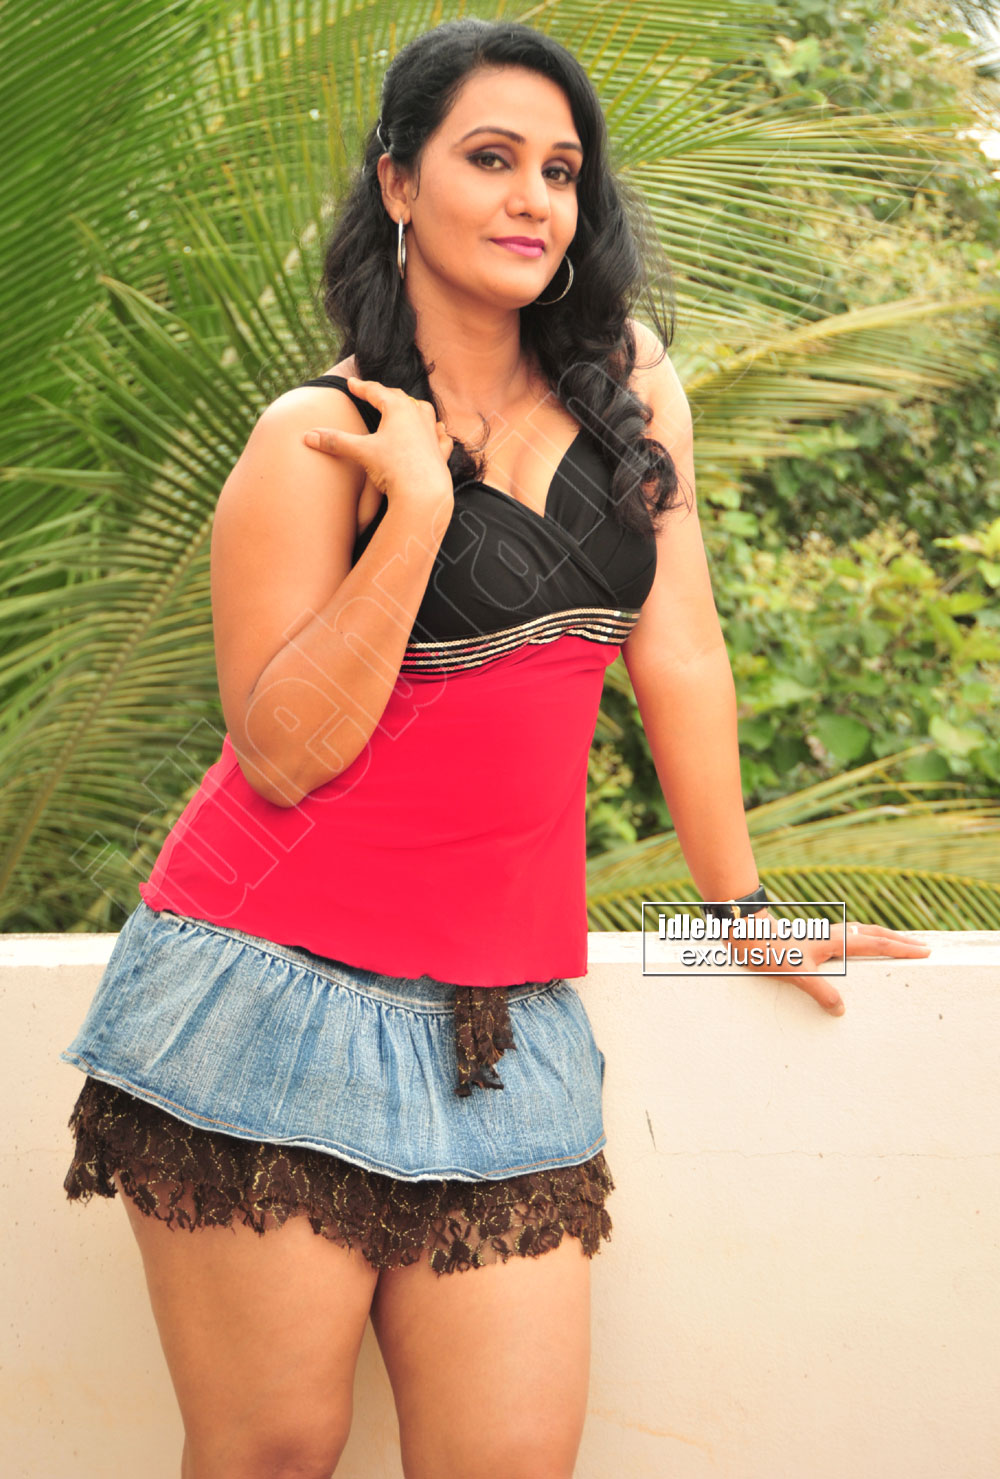 Hot pics of apoorva